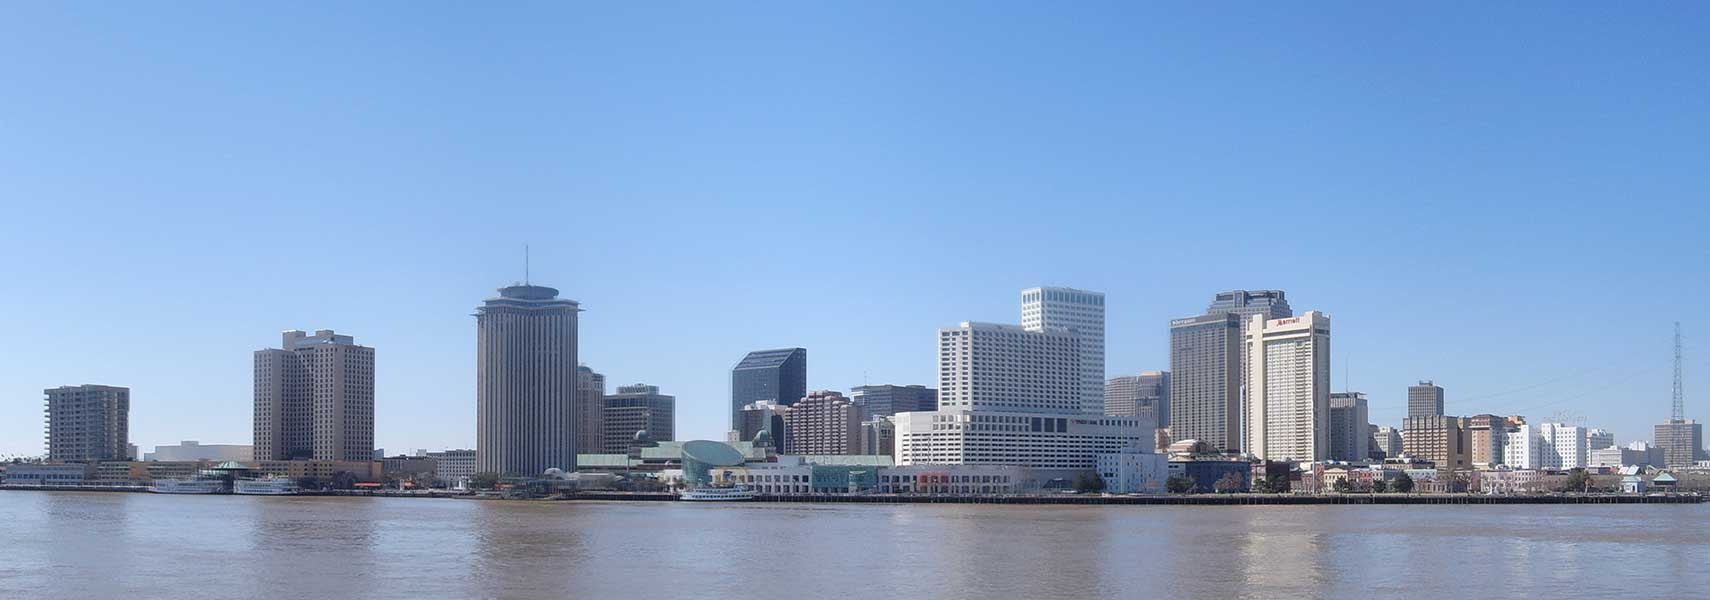 Google Map Of New Orleans Louisiana USA Nations Online Project - Map usa new orleans